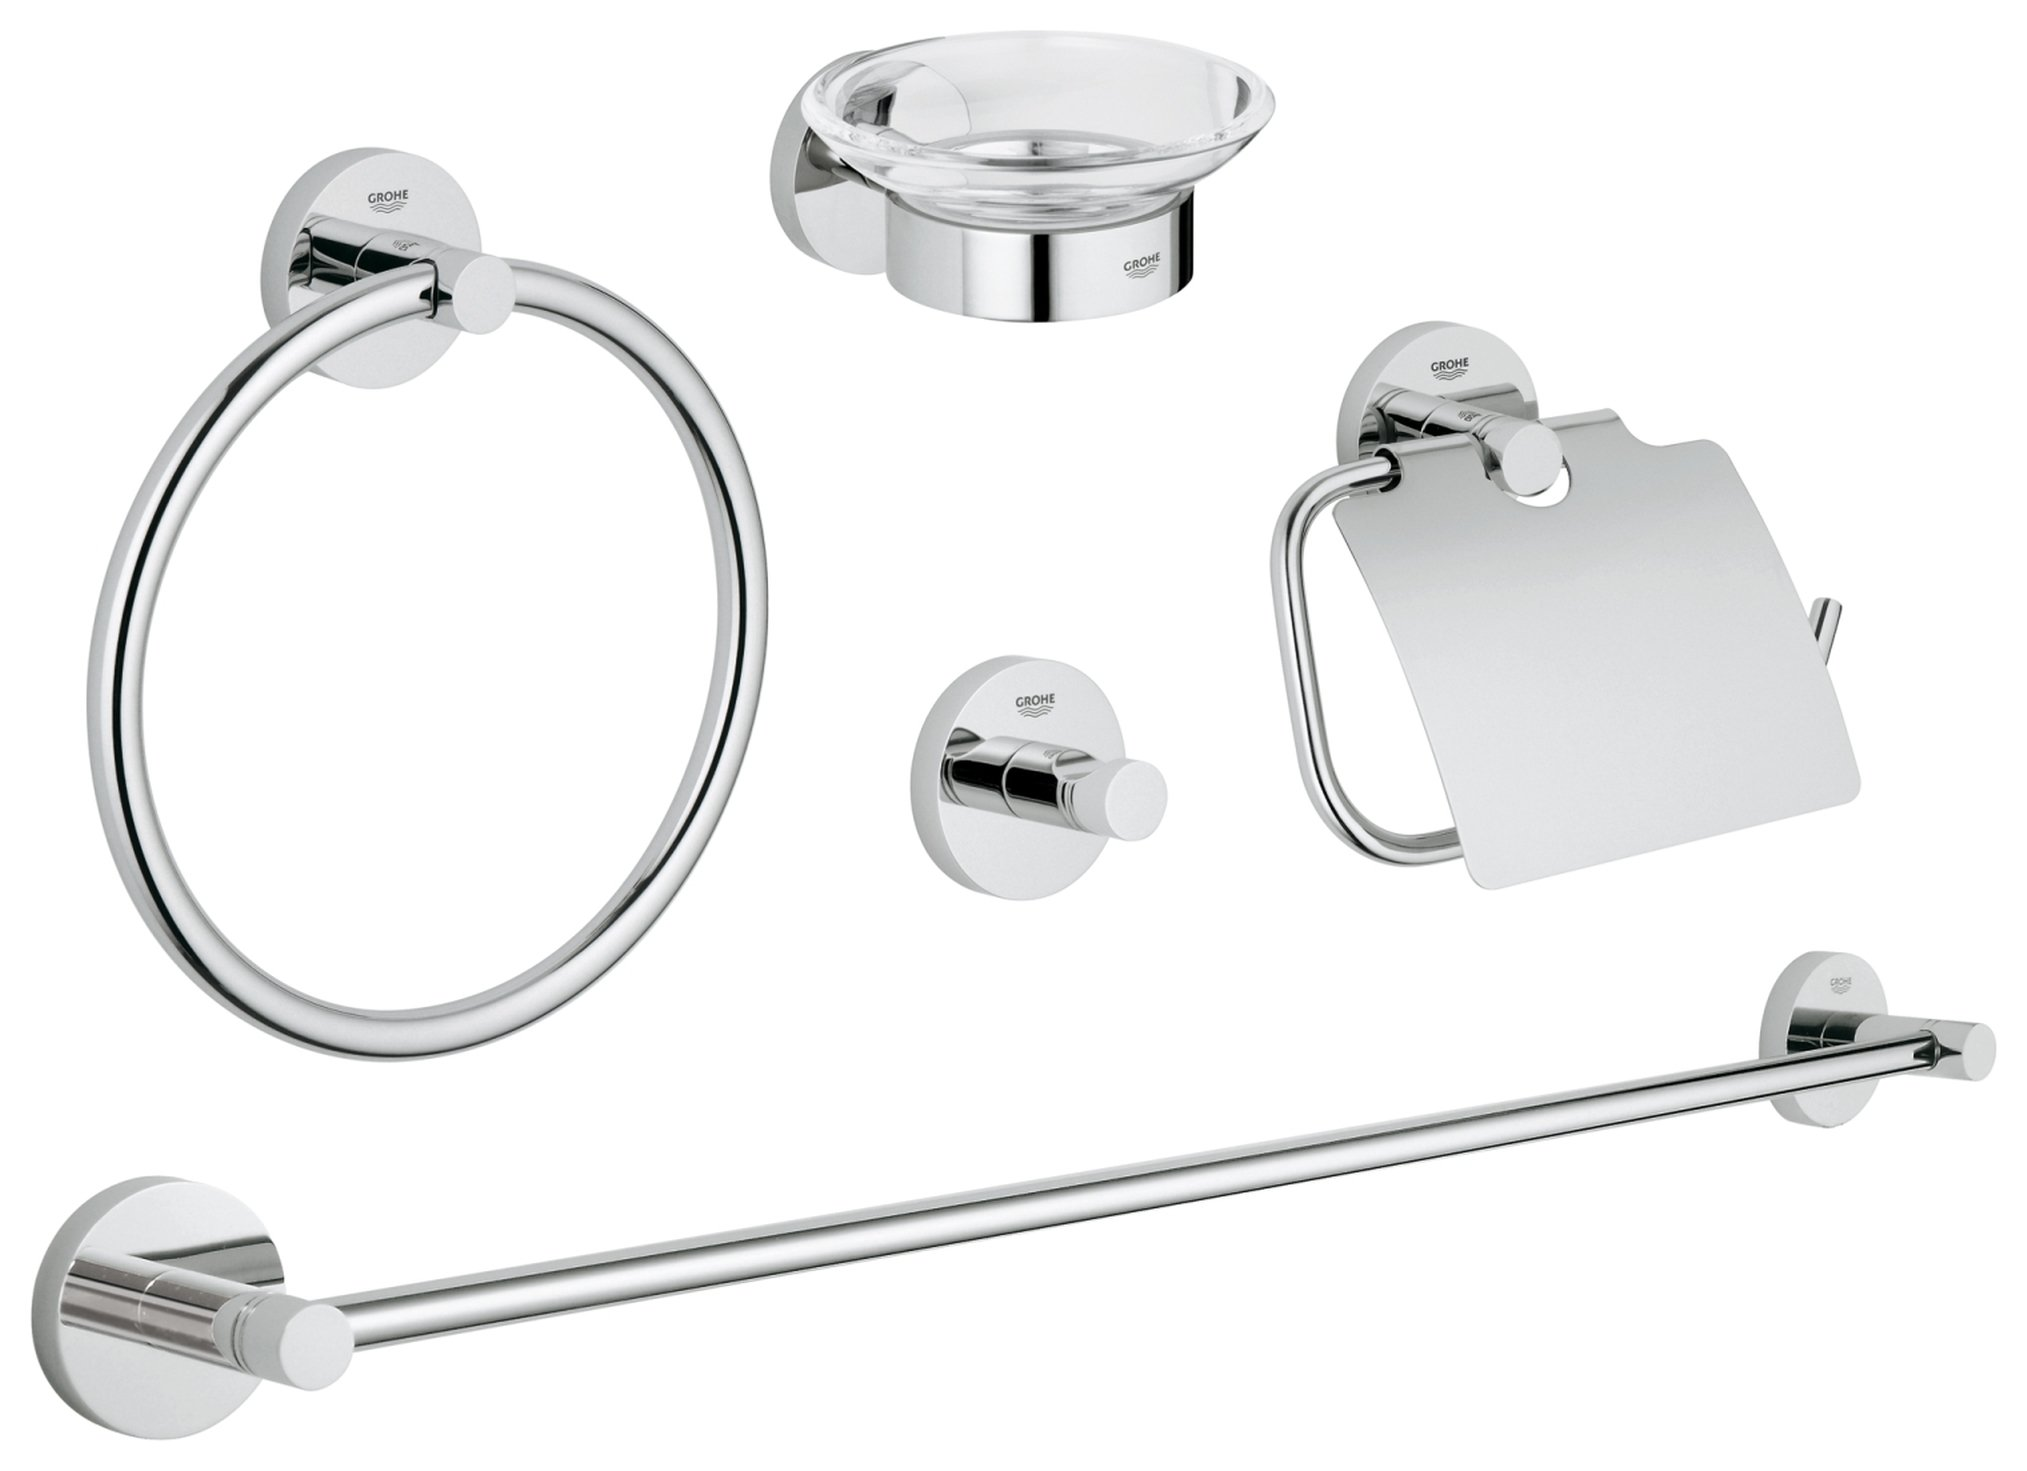 Image of Grohe Essentials - 5 Piece Accessory Set